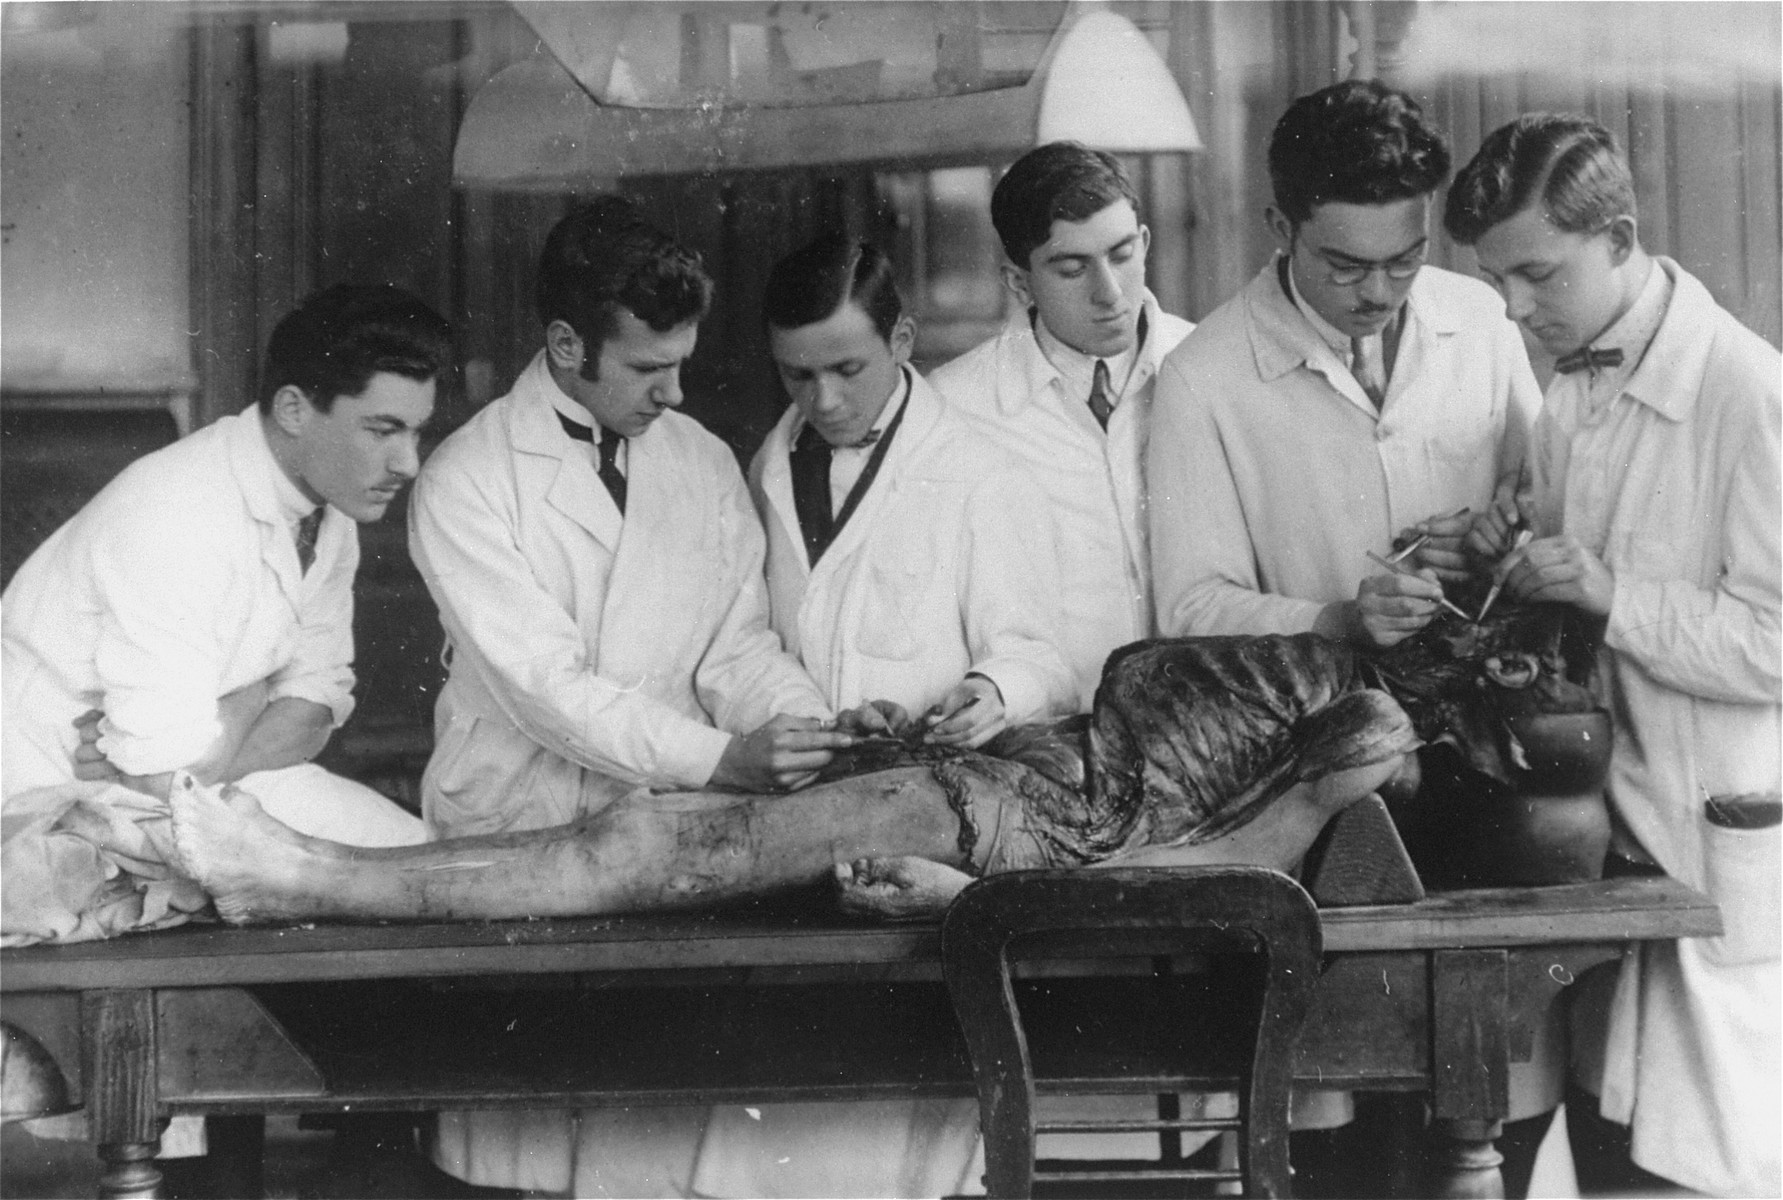 Medical students examine a cadaver at the Charles University in Prague.